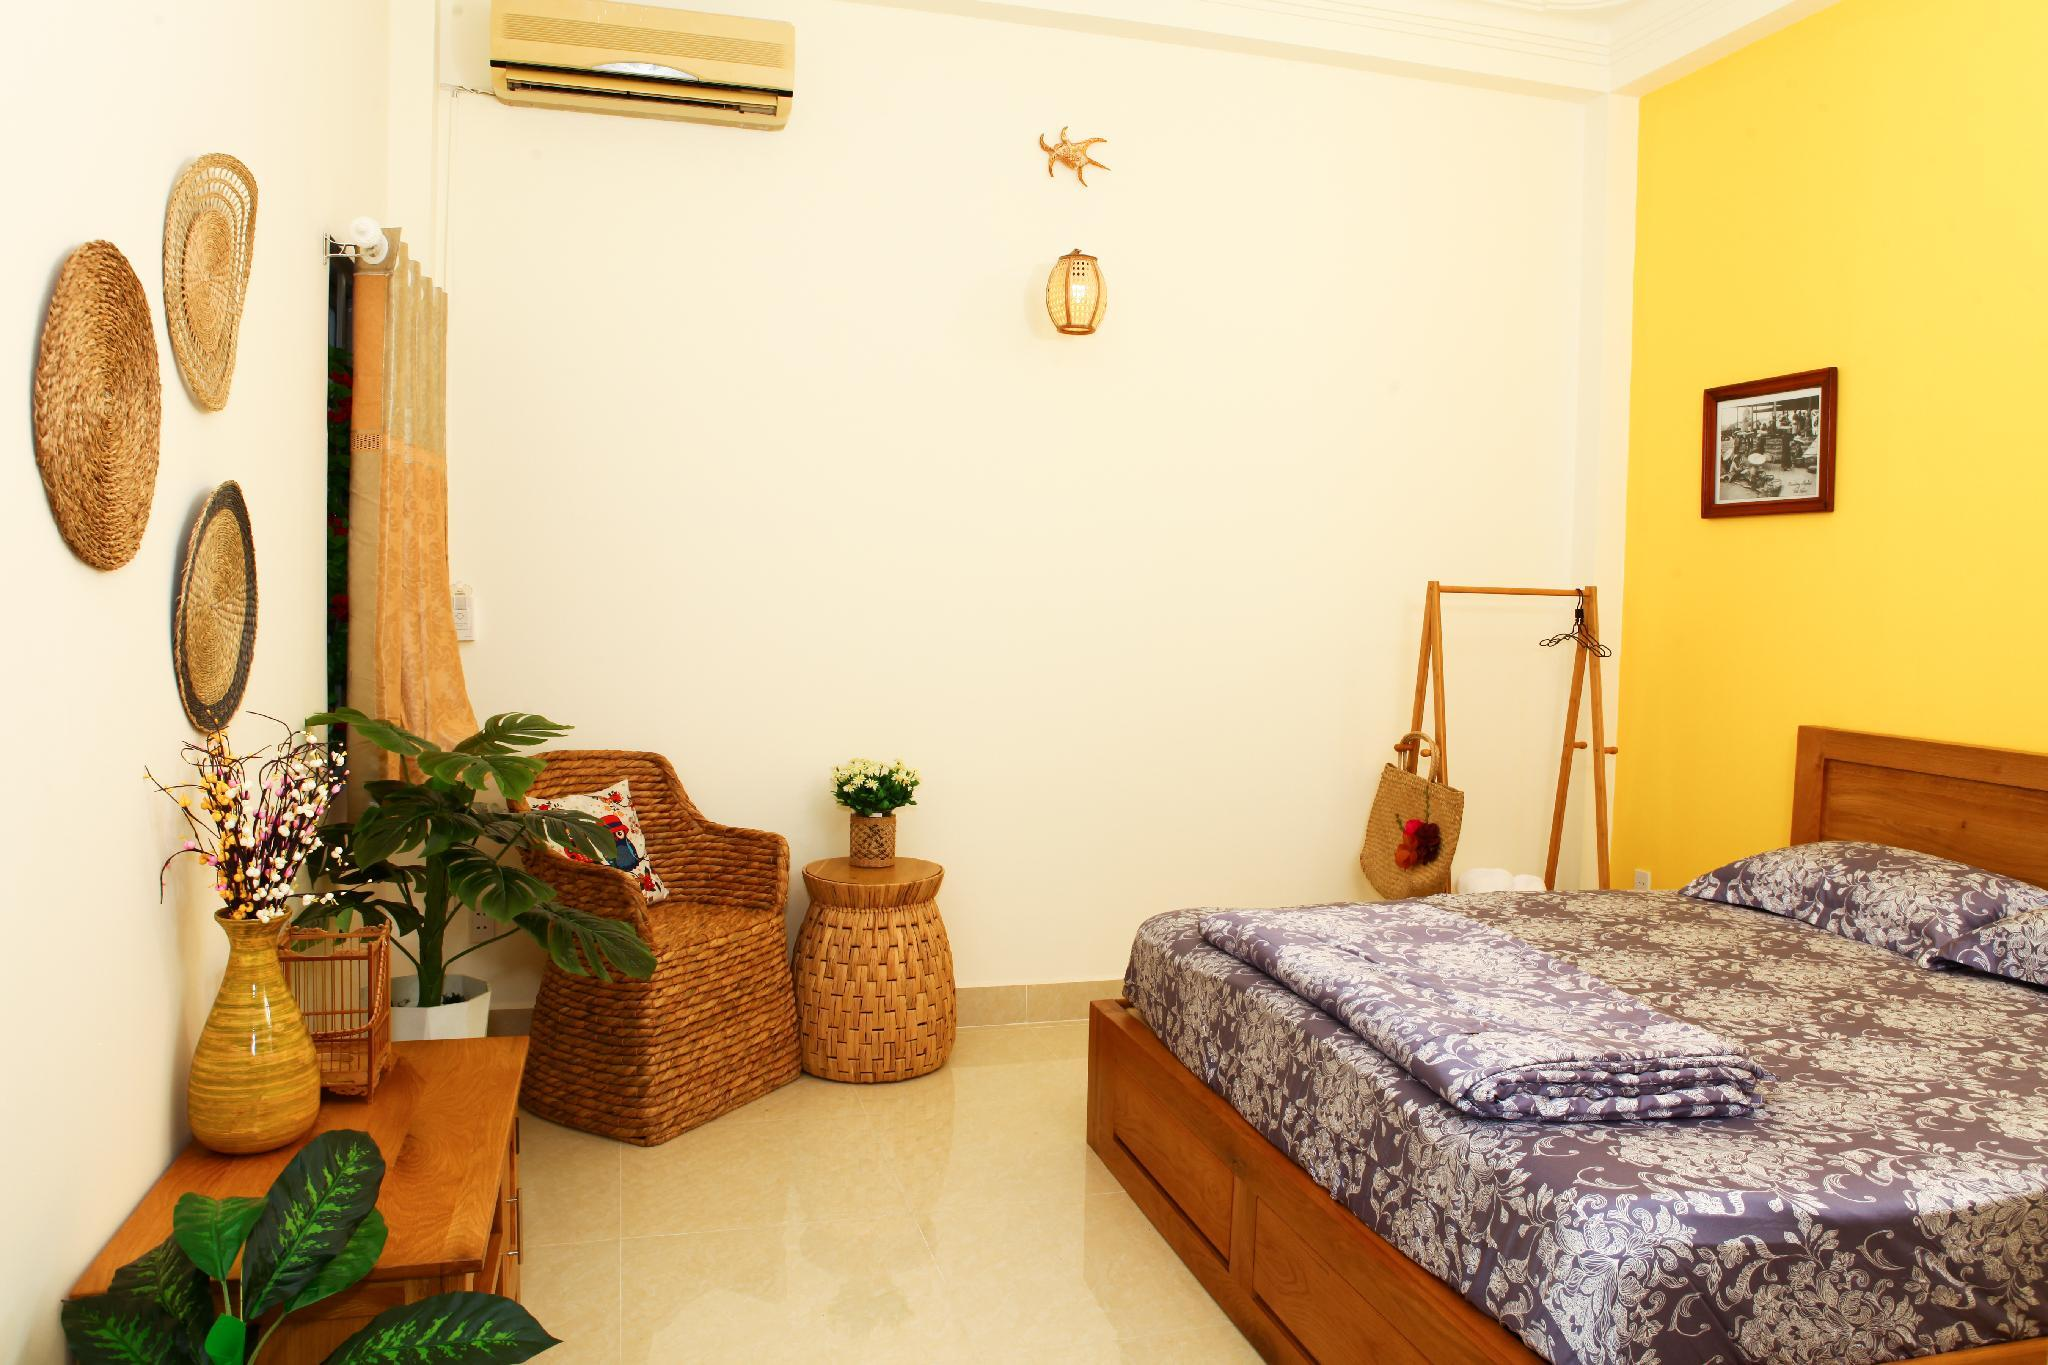 PT House*11* Rustic Style Cozy Room 15' To Airport